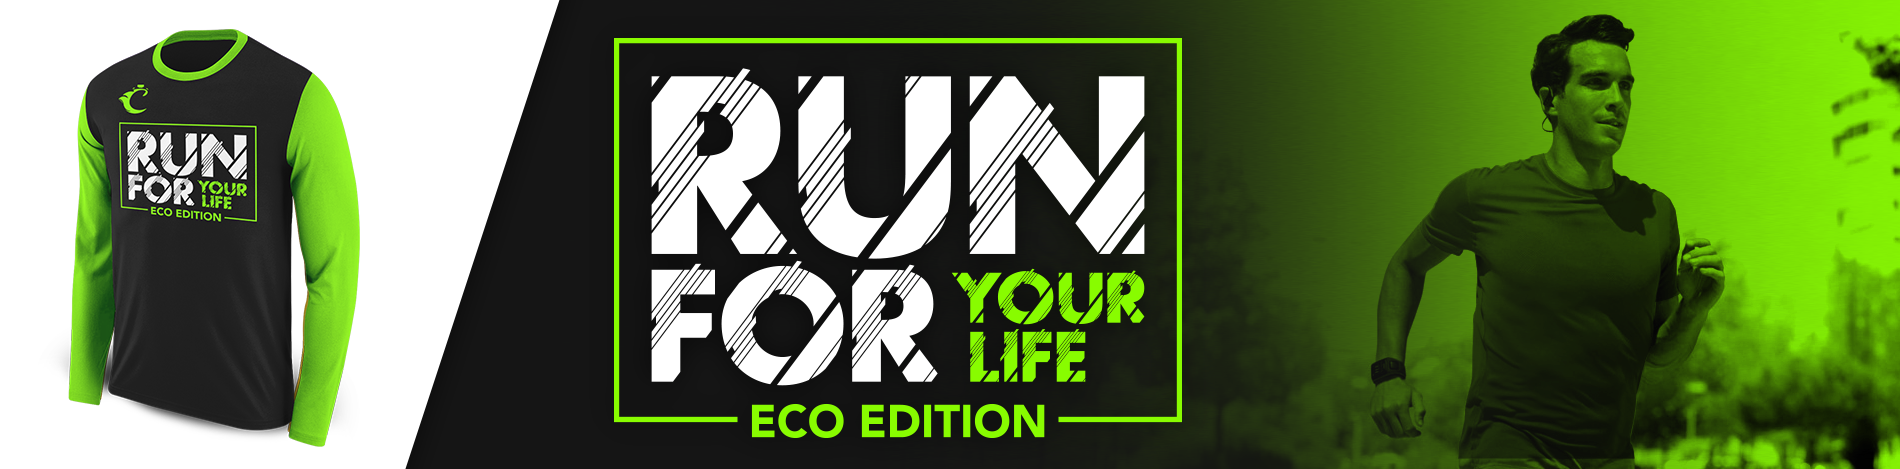 RUN FOUR YOUR LIFE - ECO EDITION